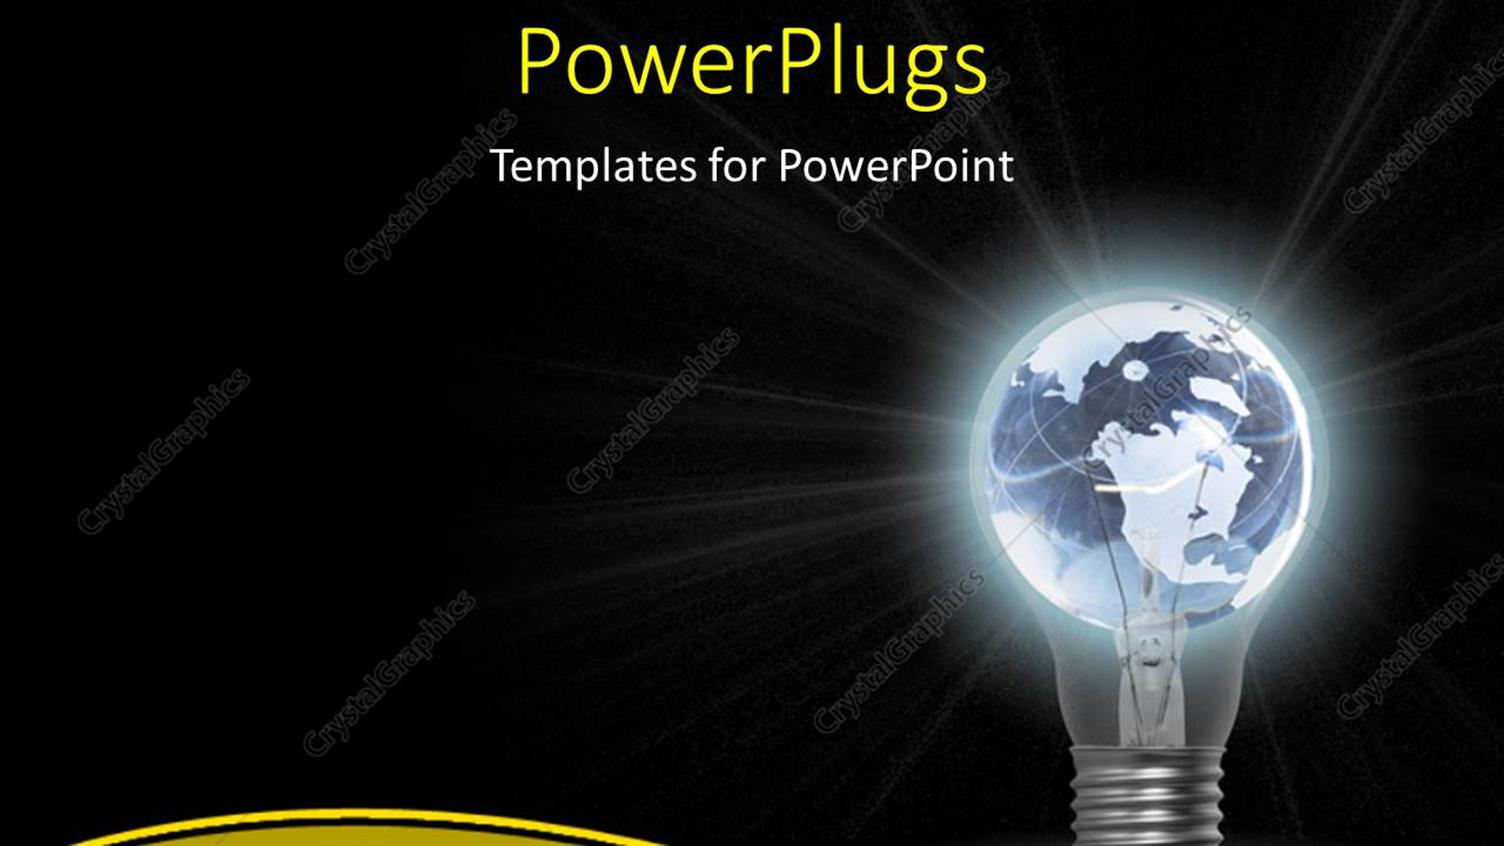 PowerPoint Template Displaying Glowing Light Bulb with Earth Globe as Filament on Black Background